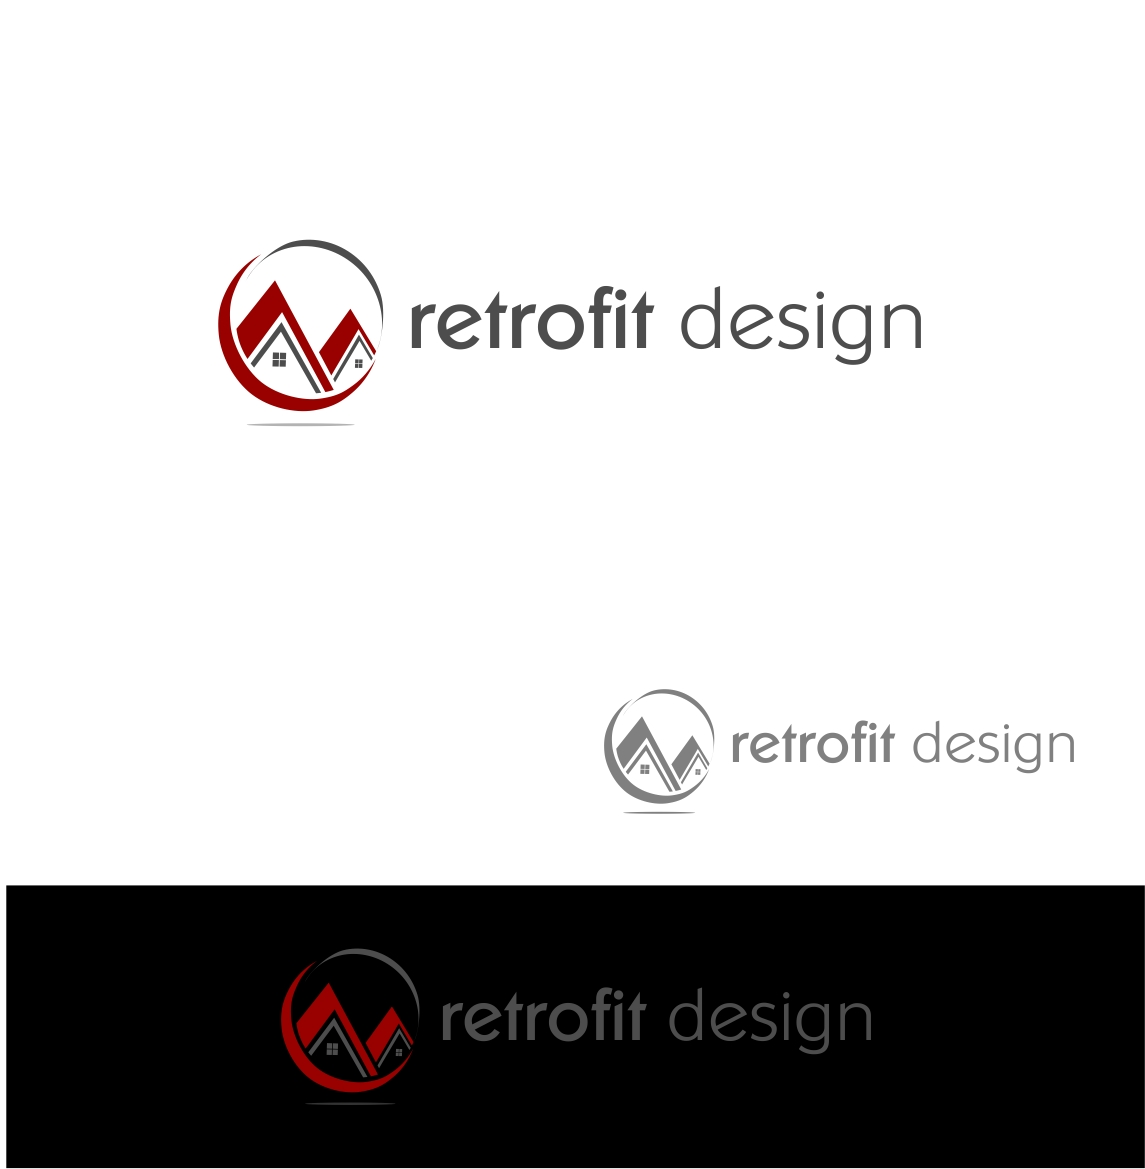 Logo Design by haidu - Entry No. 58 in the Logo Design Contest Inspiring Logo Design for retrofit design.